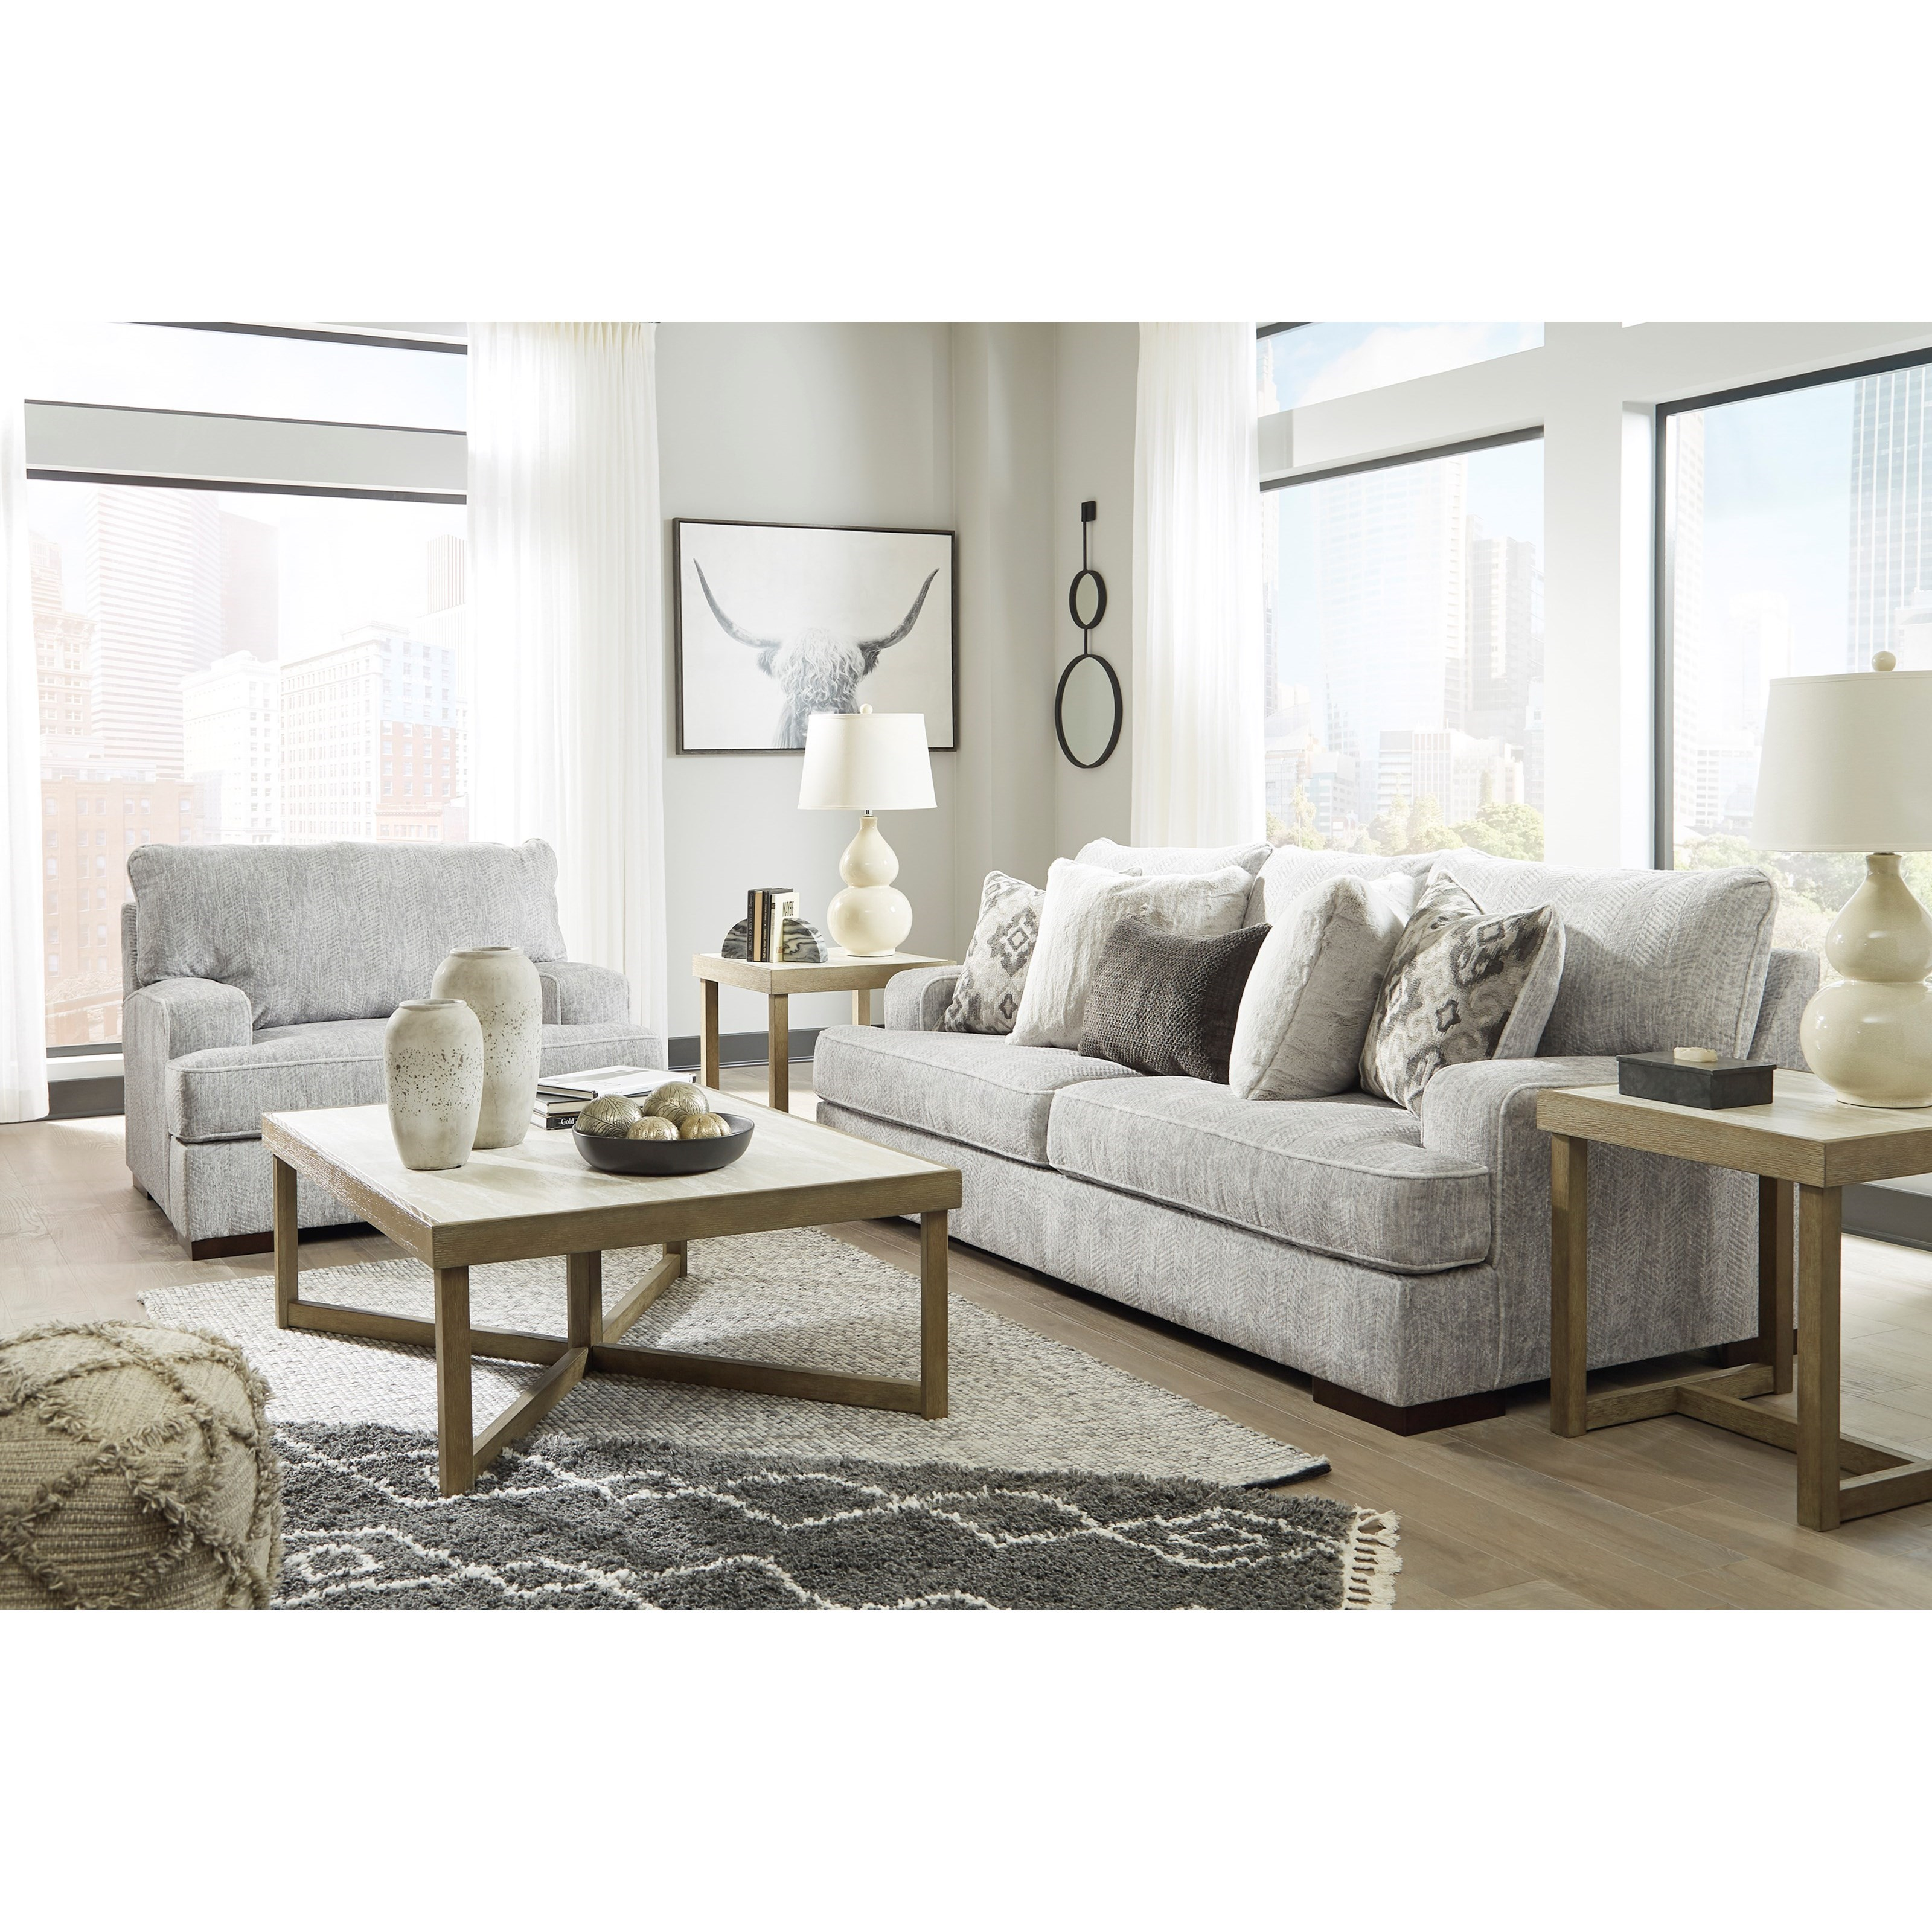 Top Living Room Furniture